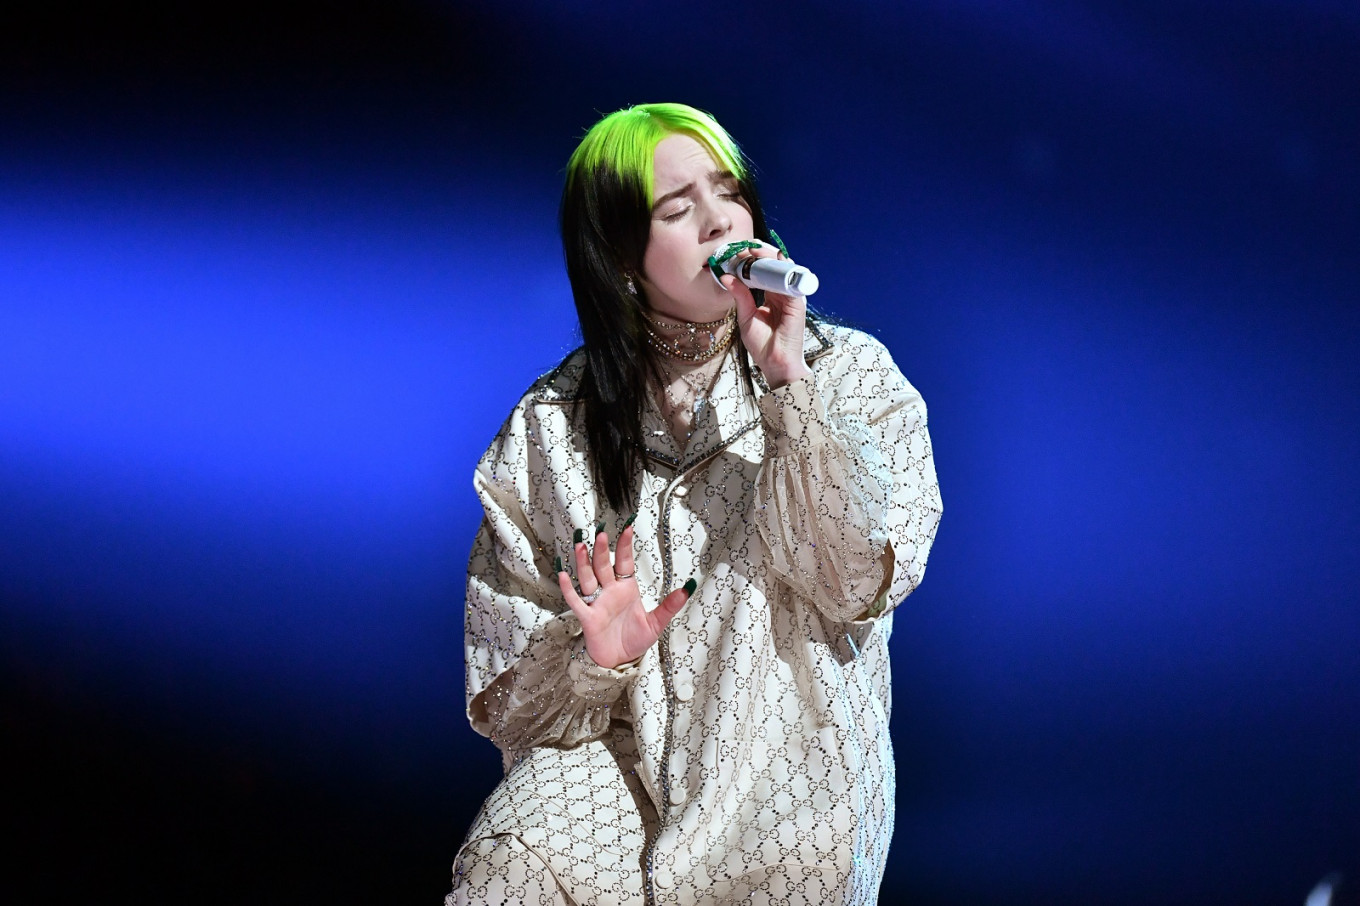 Billie Eilish to give 'special performance' at Oscars show